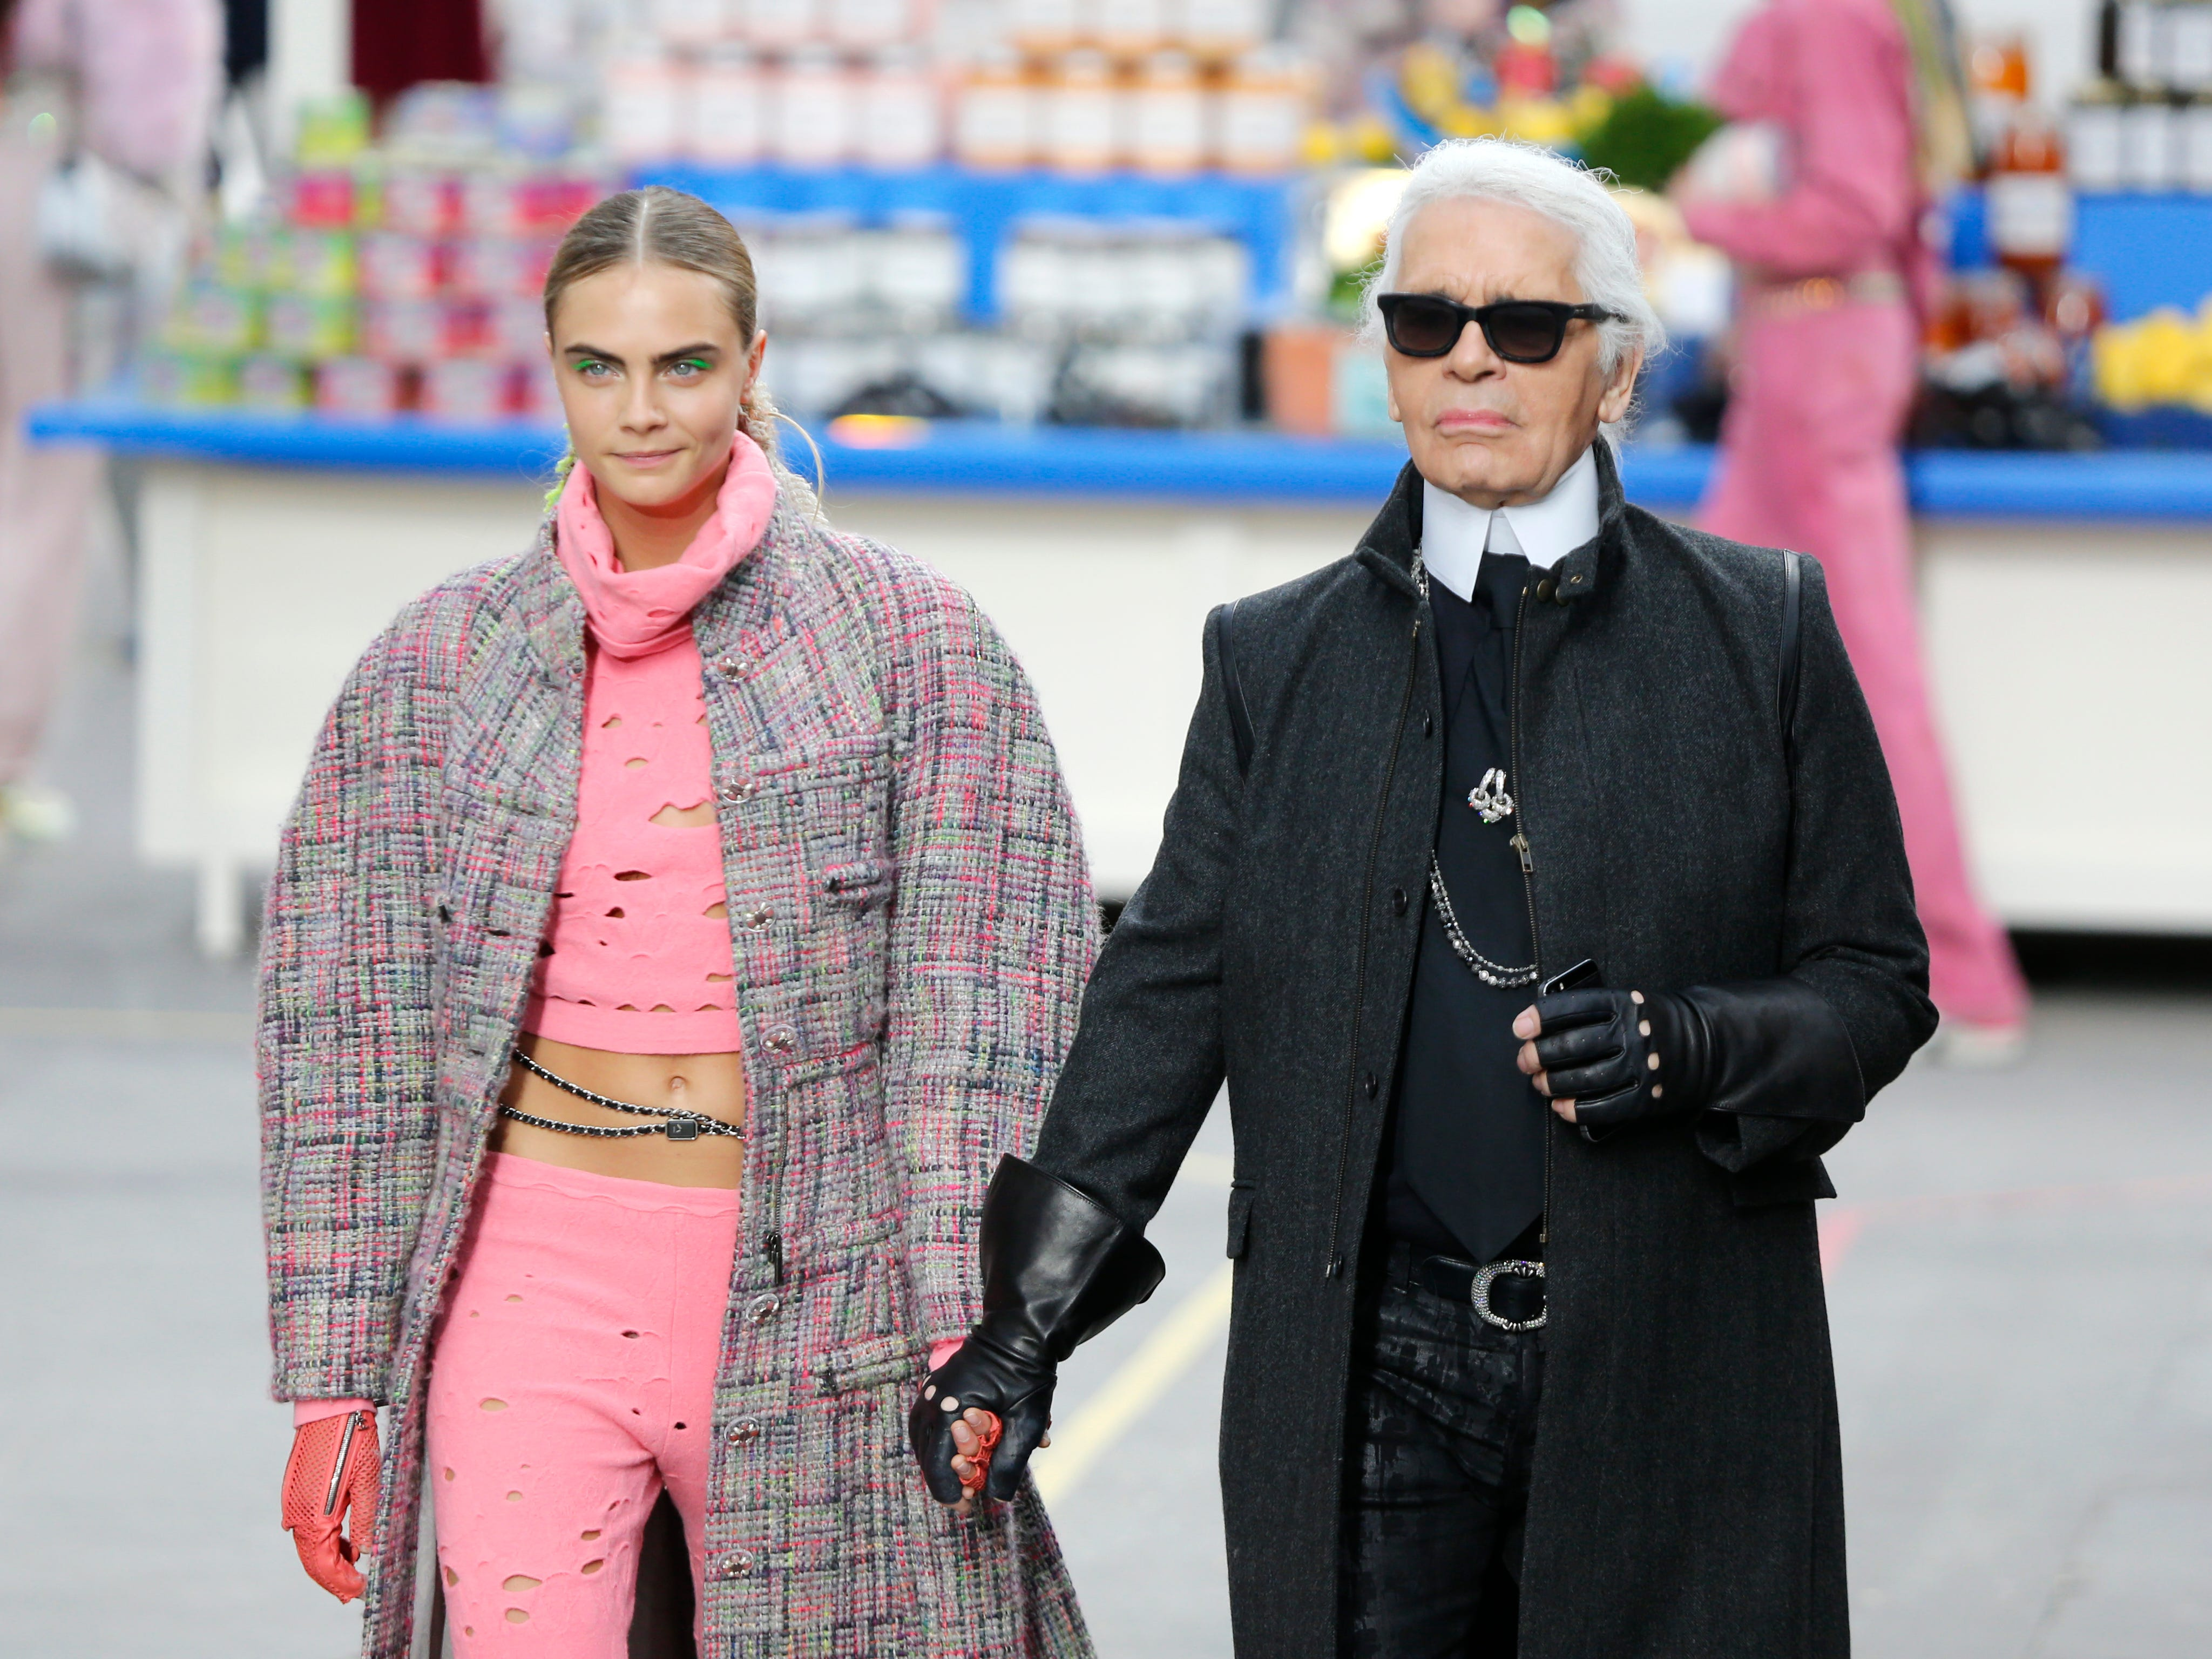 Cara Delevingne and Karl Lagerfeld pose at the presentation of Chanel's ready to wear fall/winter 2014-2015 fashion collection presented in Paris, March 4, 2014.